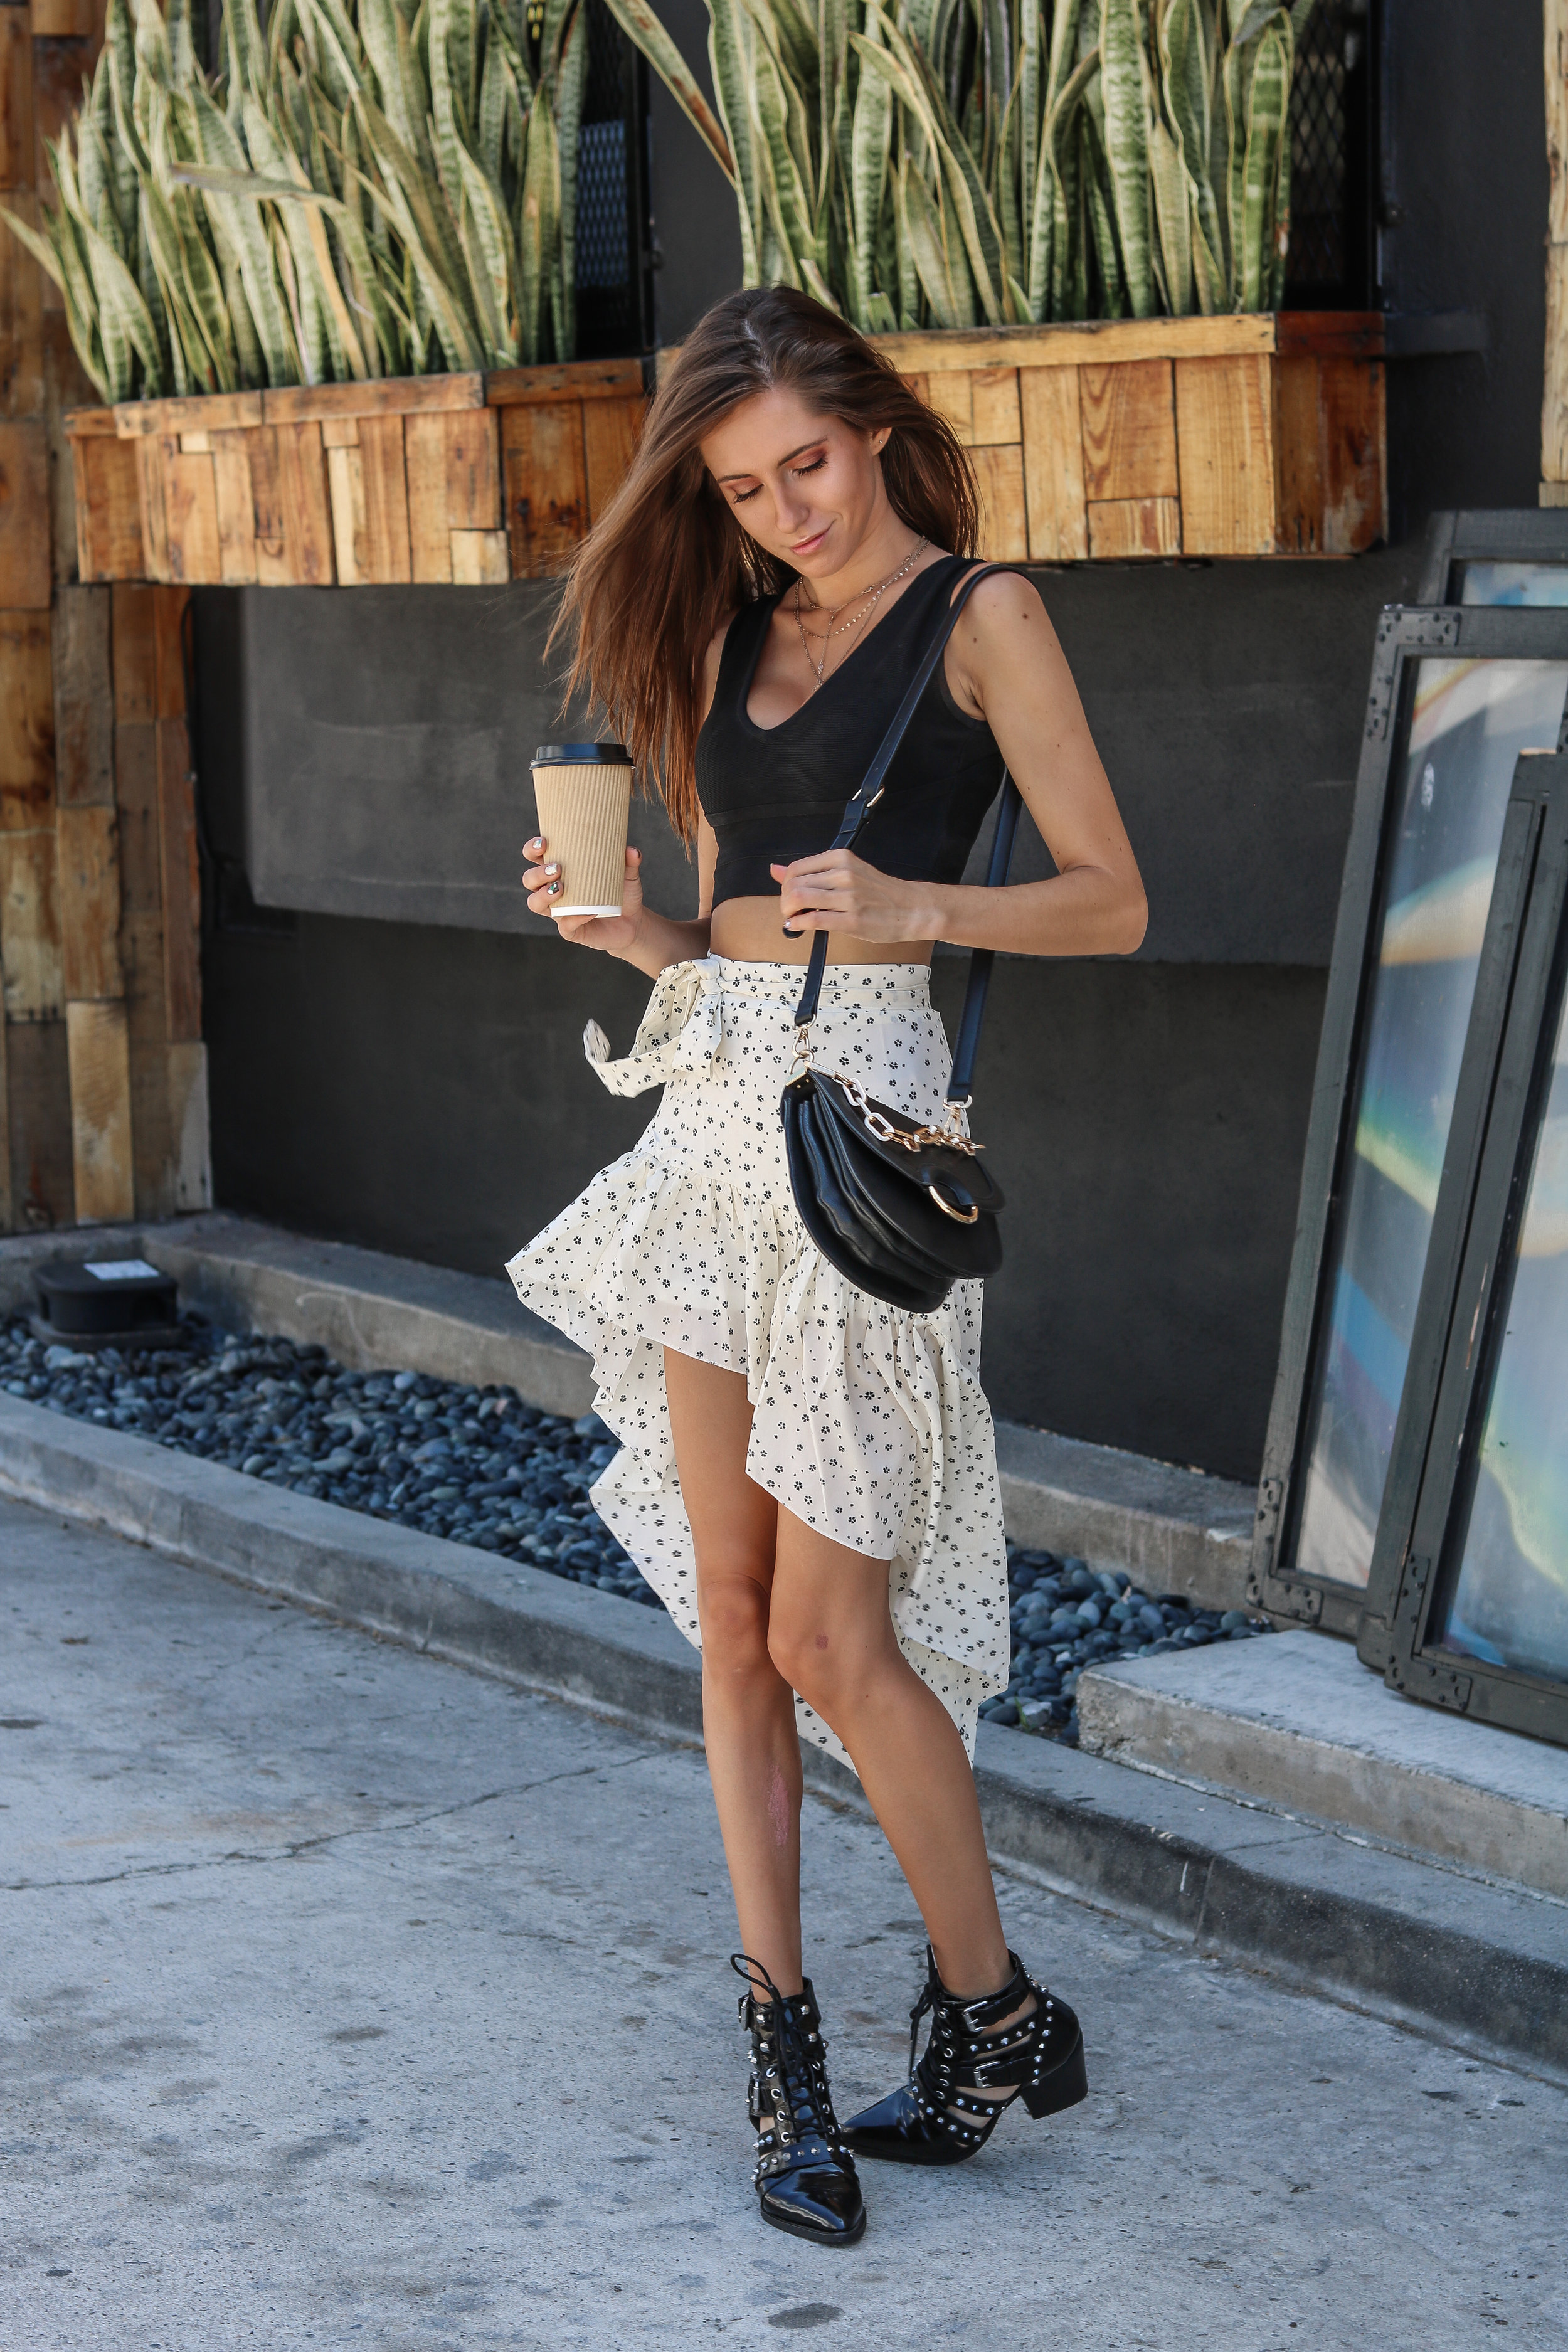 The Hungarian Brunette OOTD inspo: boho vibes with a high low skirt plus 20 options to shop